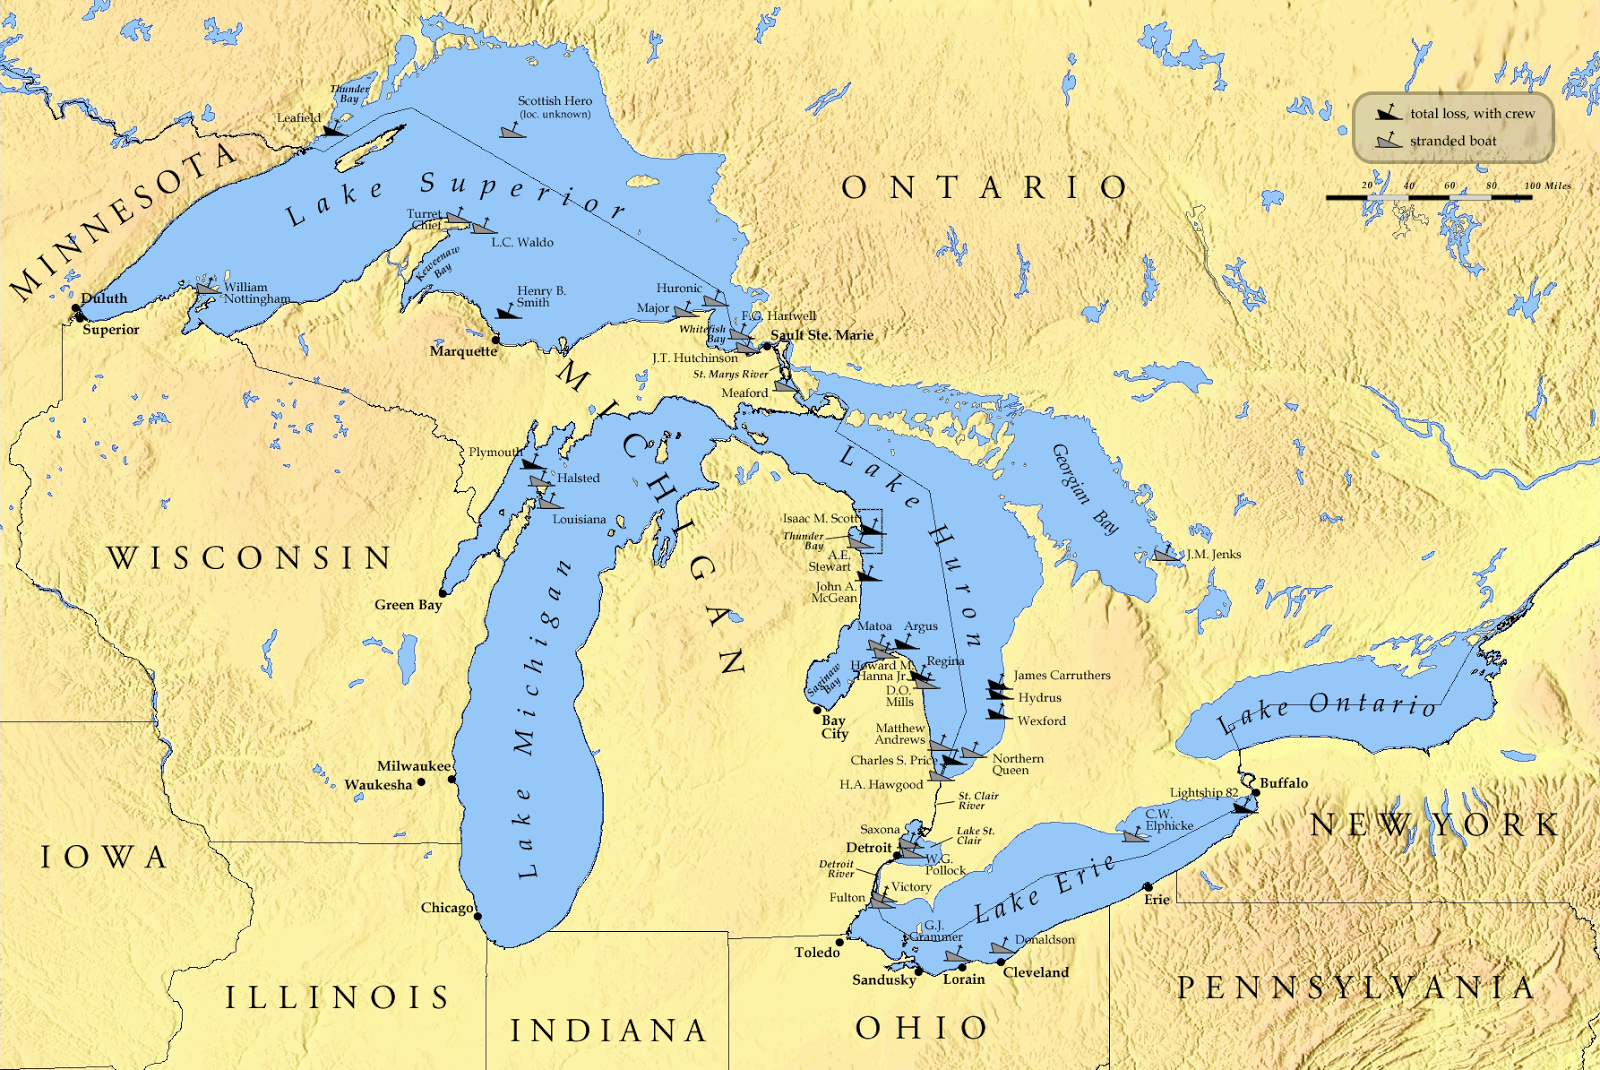 they are five the lake superior michigan huron erie and the lake ontario between the lakes erie and ontario you can see beautiful and well known